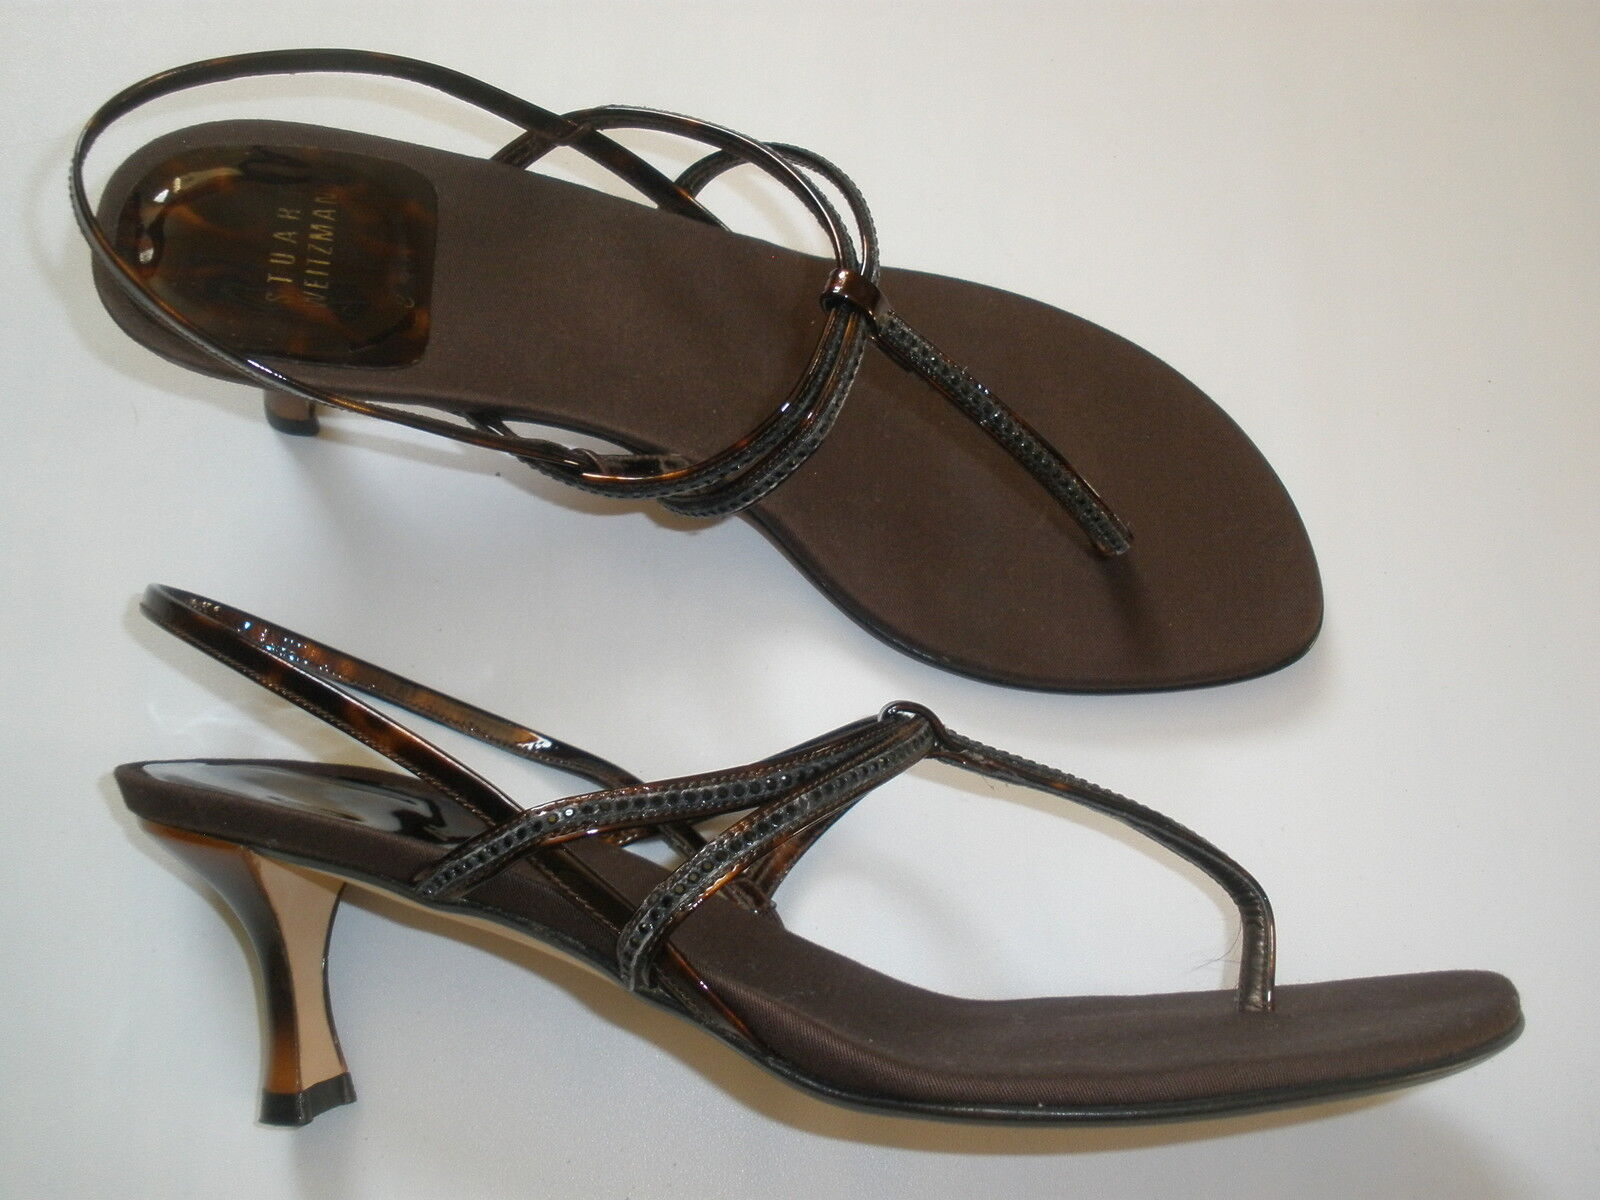 acquistare ora   279 STUART WEITZMAN WEITZMAN WEITZMAN ANKLE SANDALS  HEELS Dimensione 8  SALE  HOT MADE IN SPAIN  promozioni